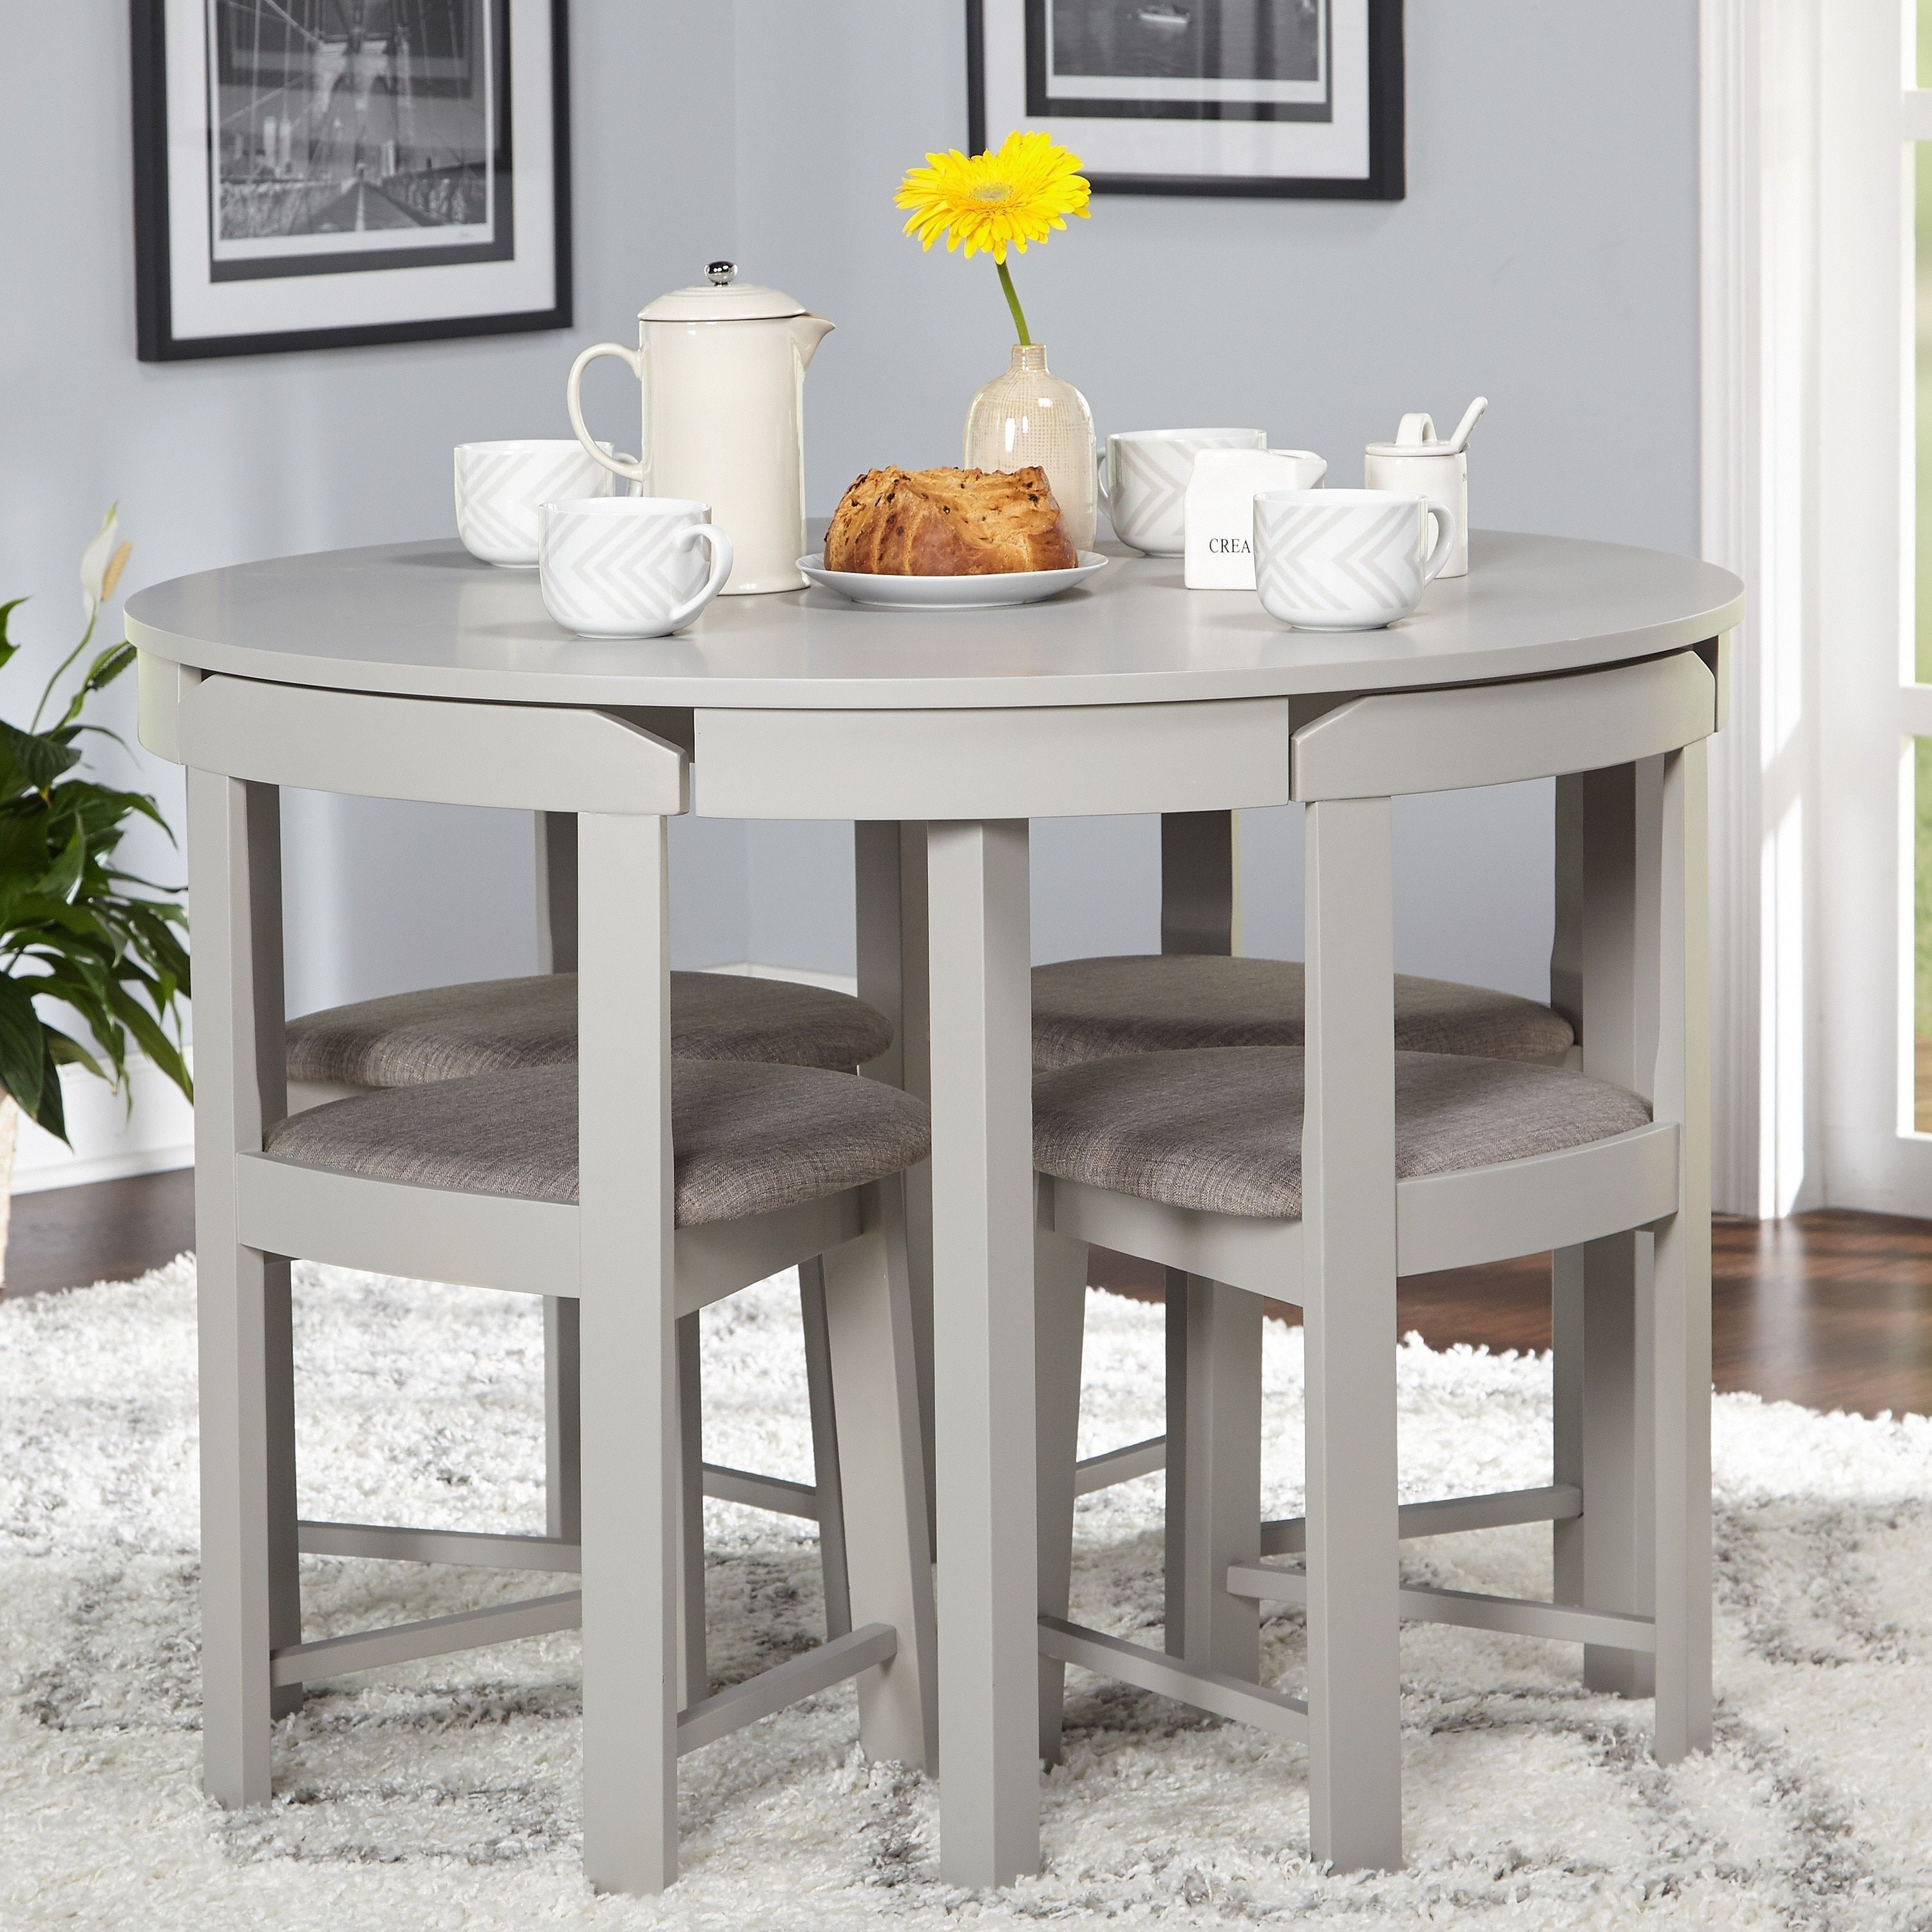 Perfect for smaller spaces the 5piece Tobey Compact